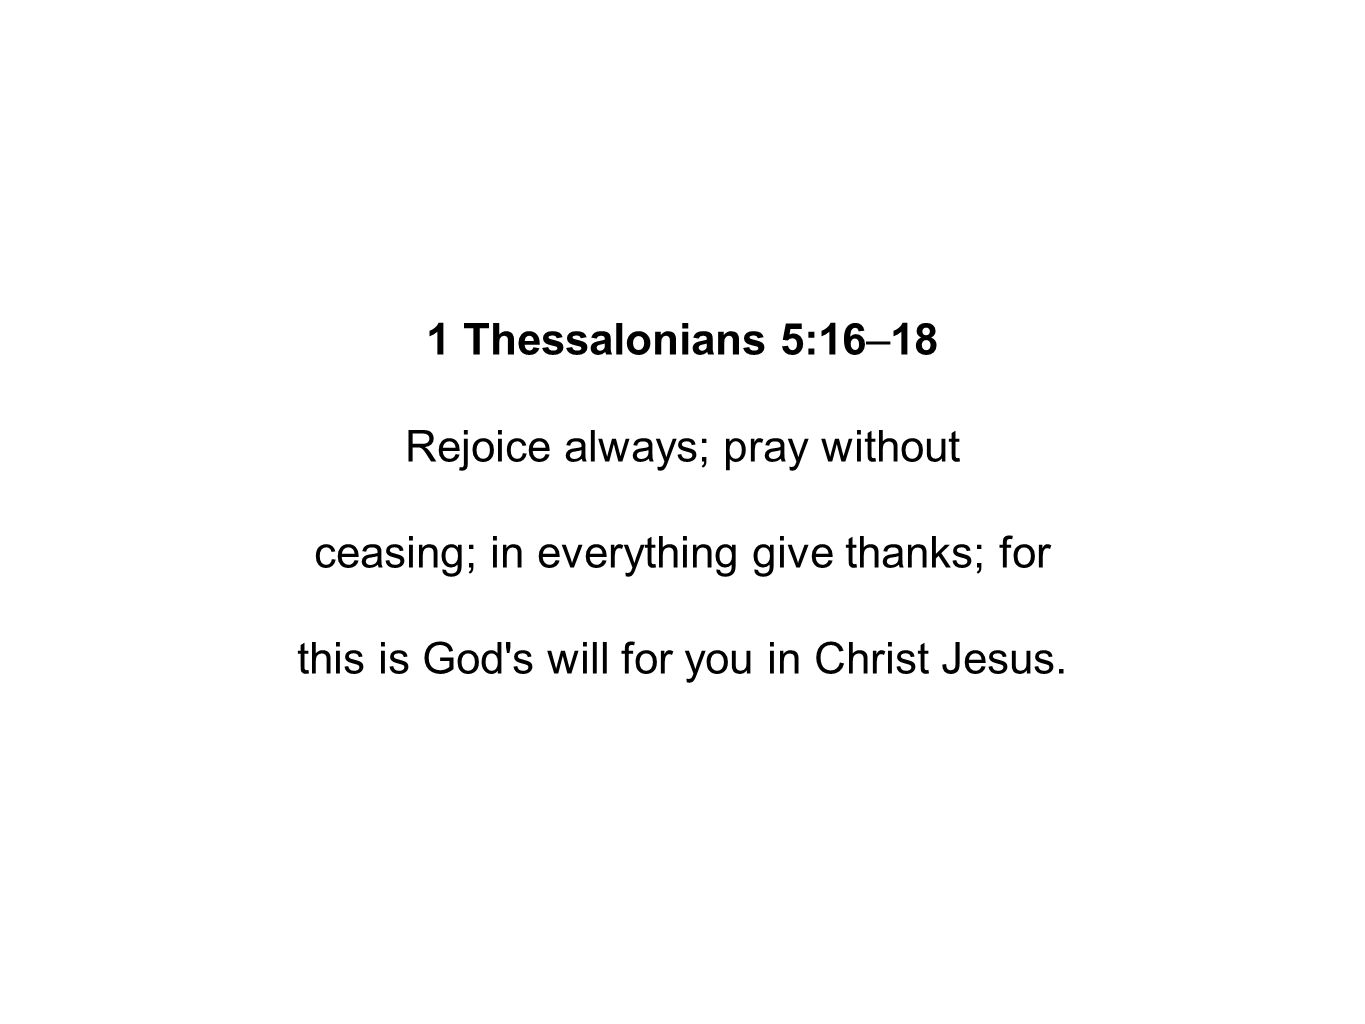 1 Thessalonians 5:16–18 Rejoice always; pray without ceasing; in everything give thanks; for this is God s will for you in Christ Jesus.